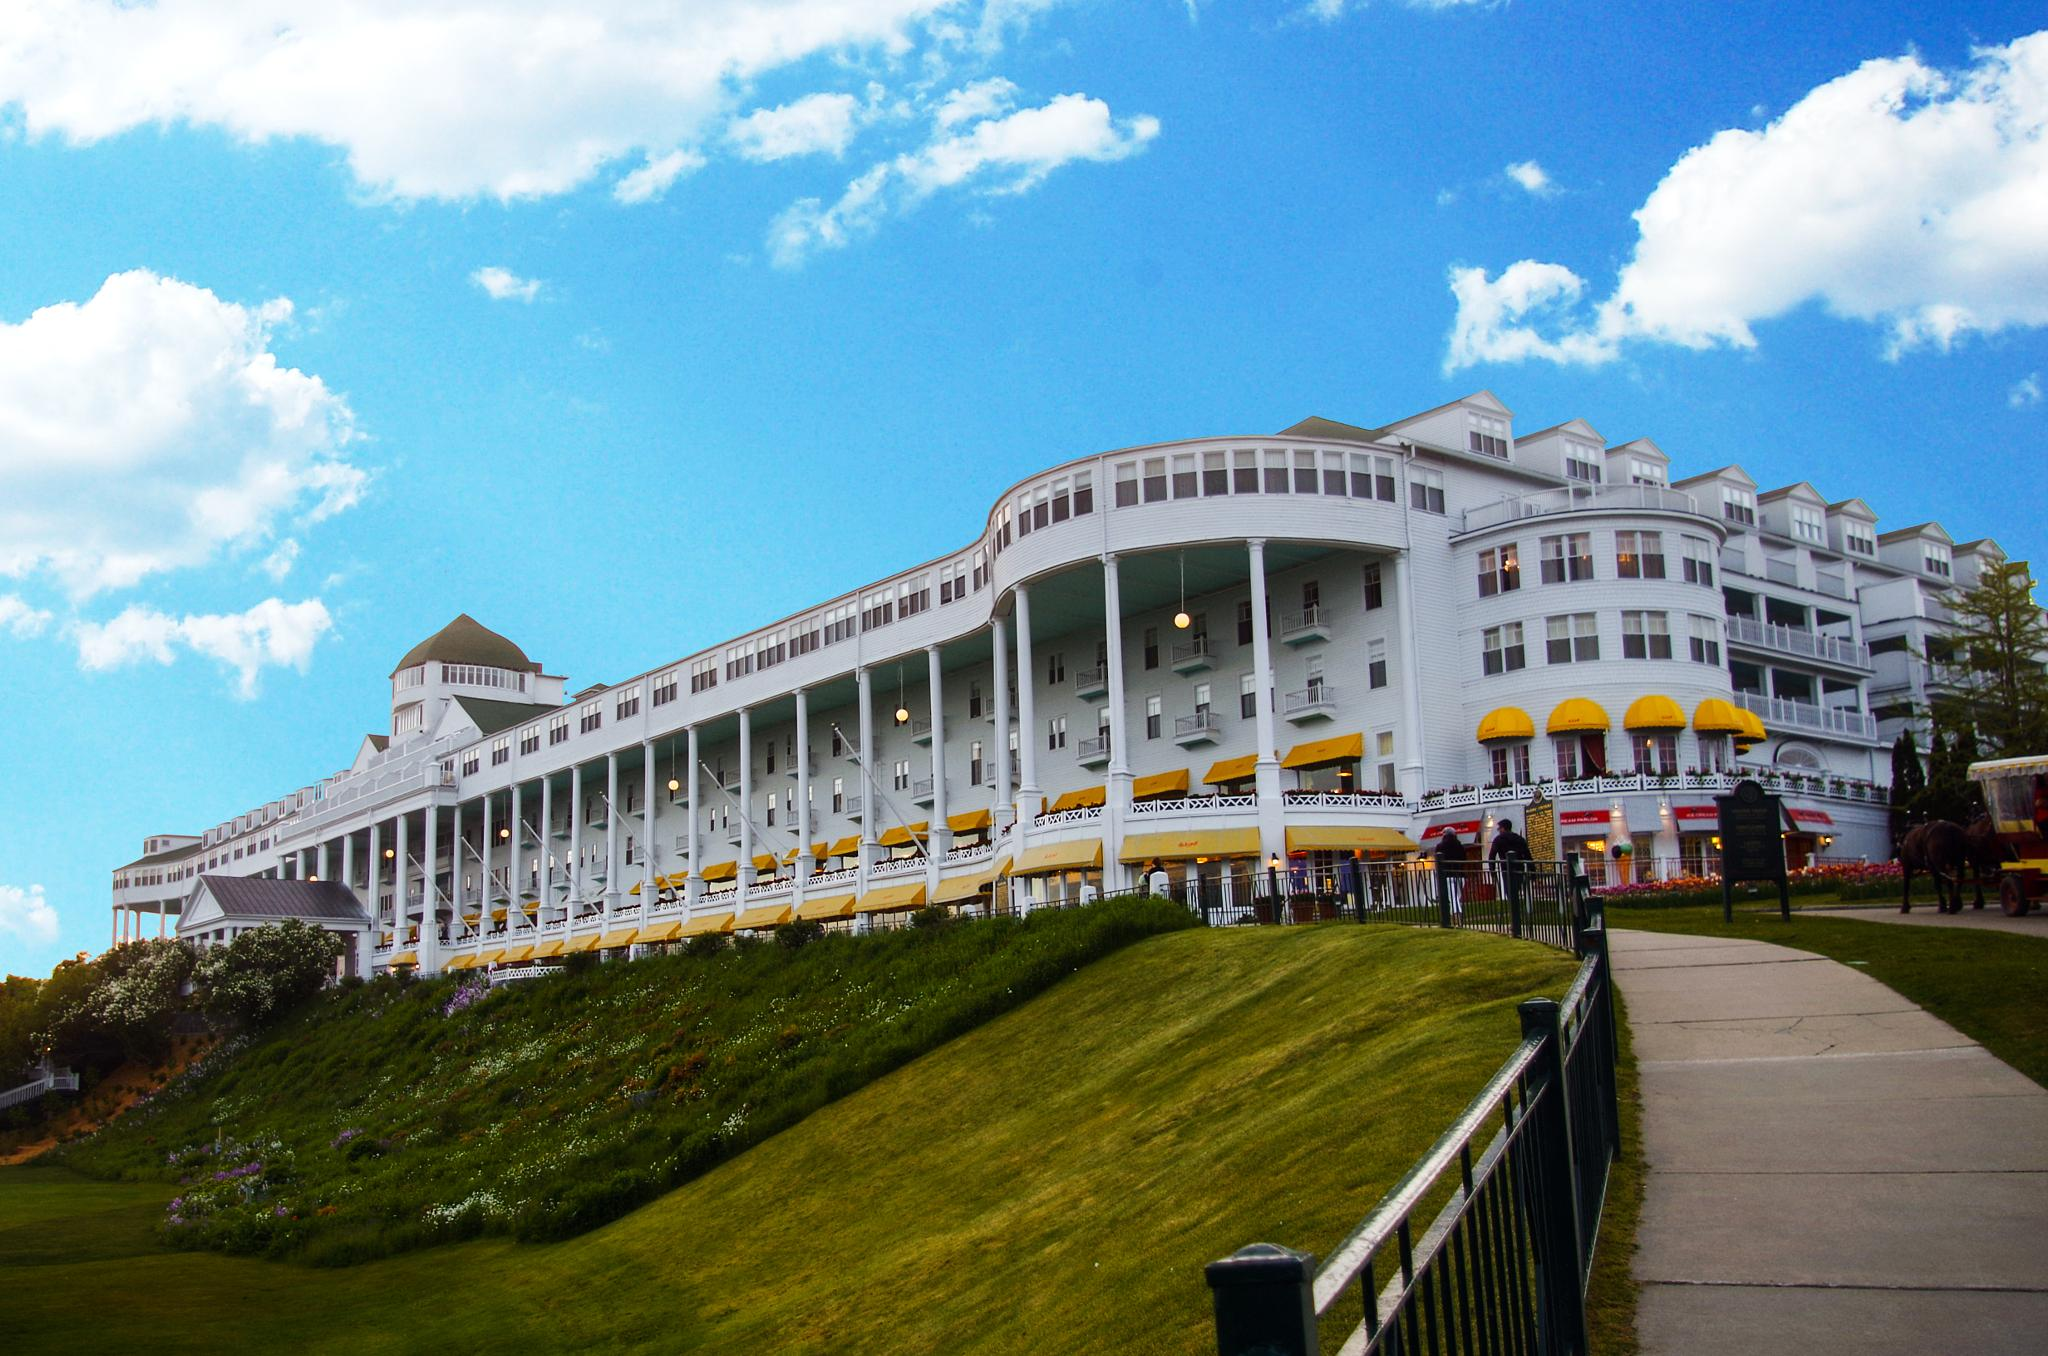 The Grand Hotel by NoblePhotography